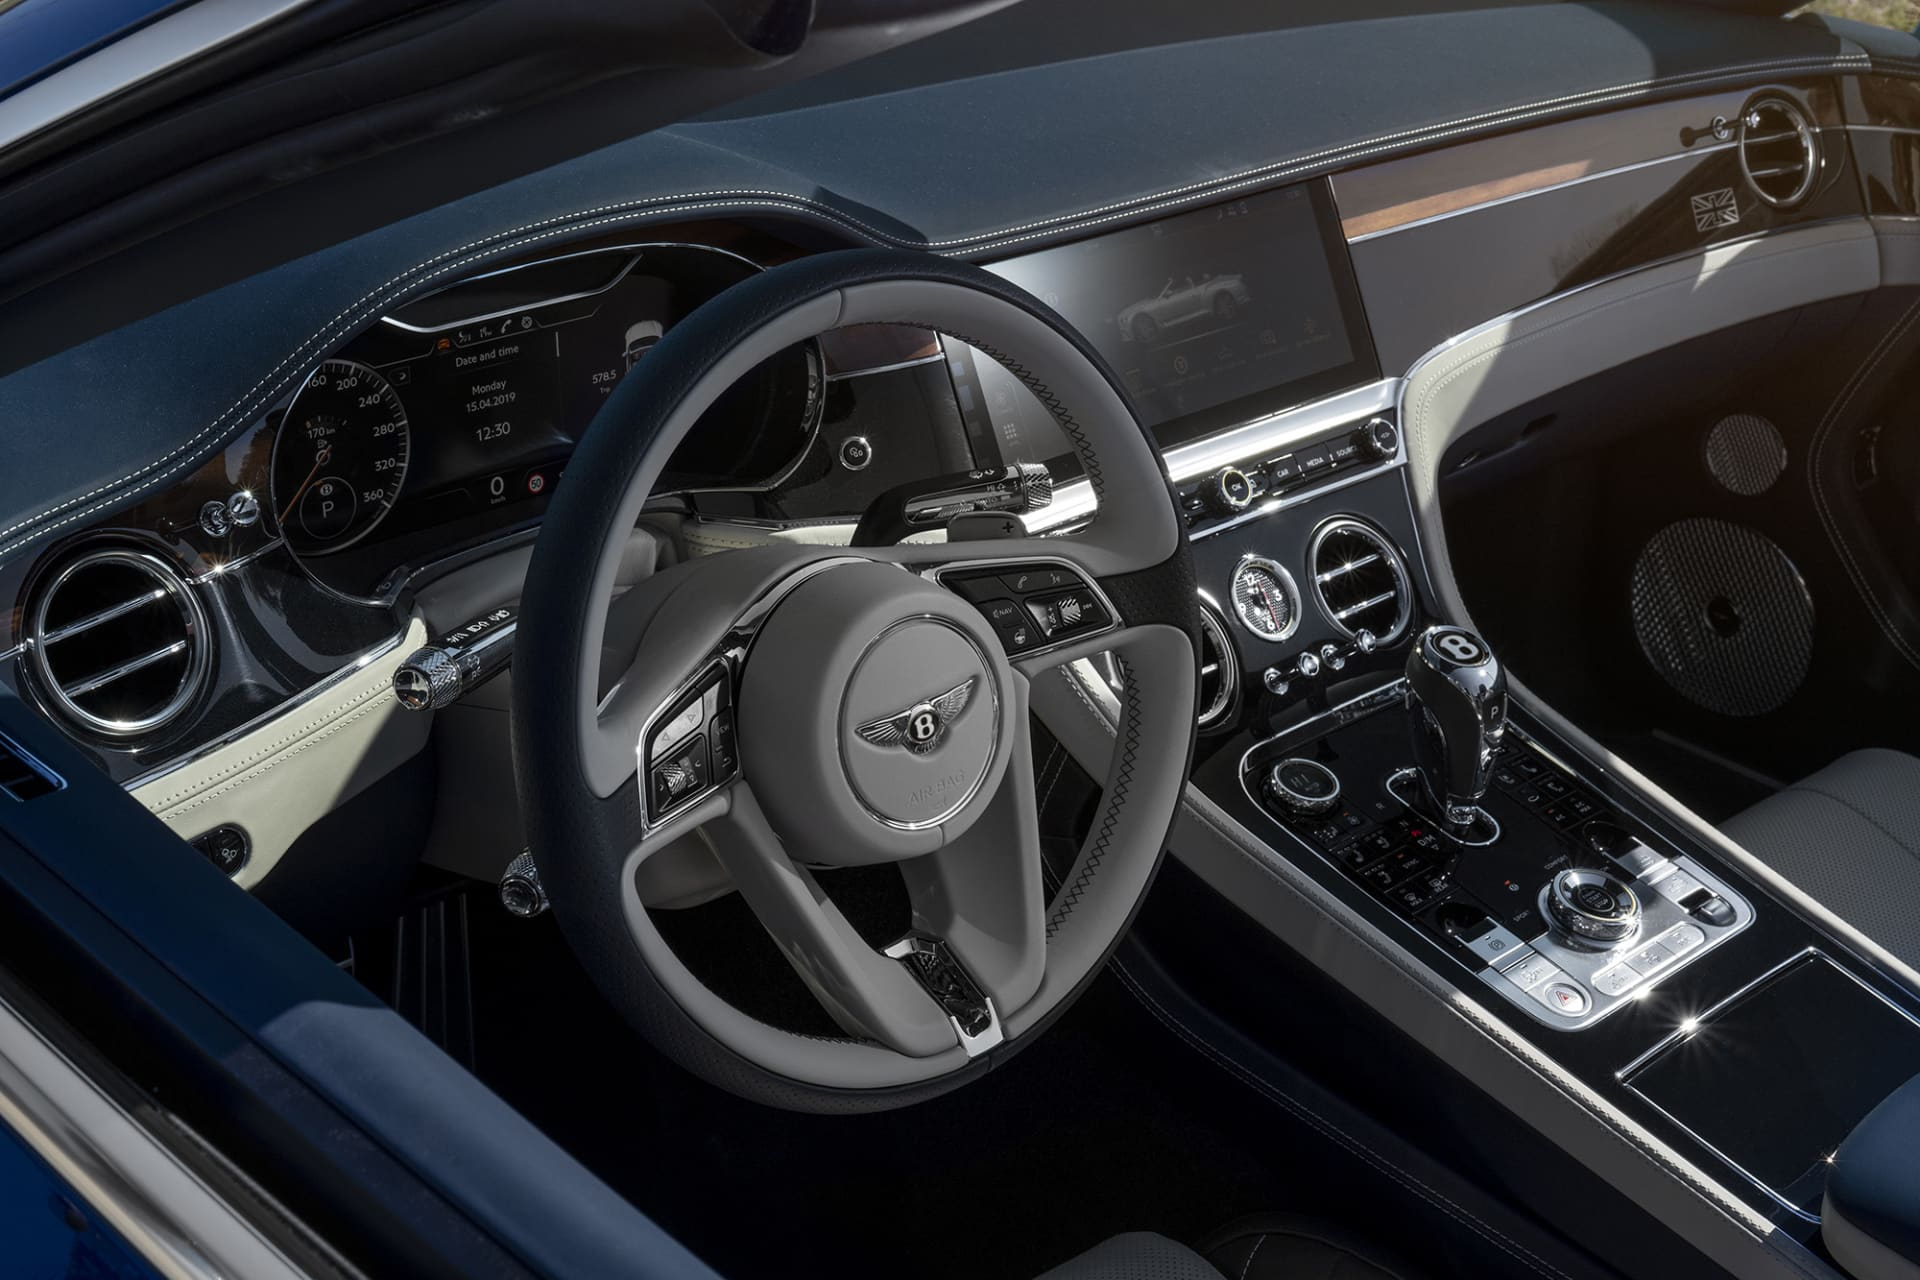 The feeling of craftmanship in the Continental GT Convertible is absolutely top class. Looking for flaws in a car like this is a waste of time when you can take the opportunity to fully enjoy its beauty instead.